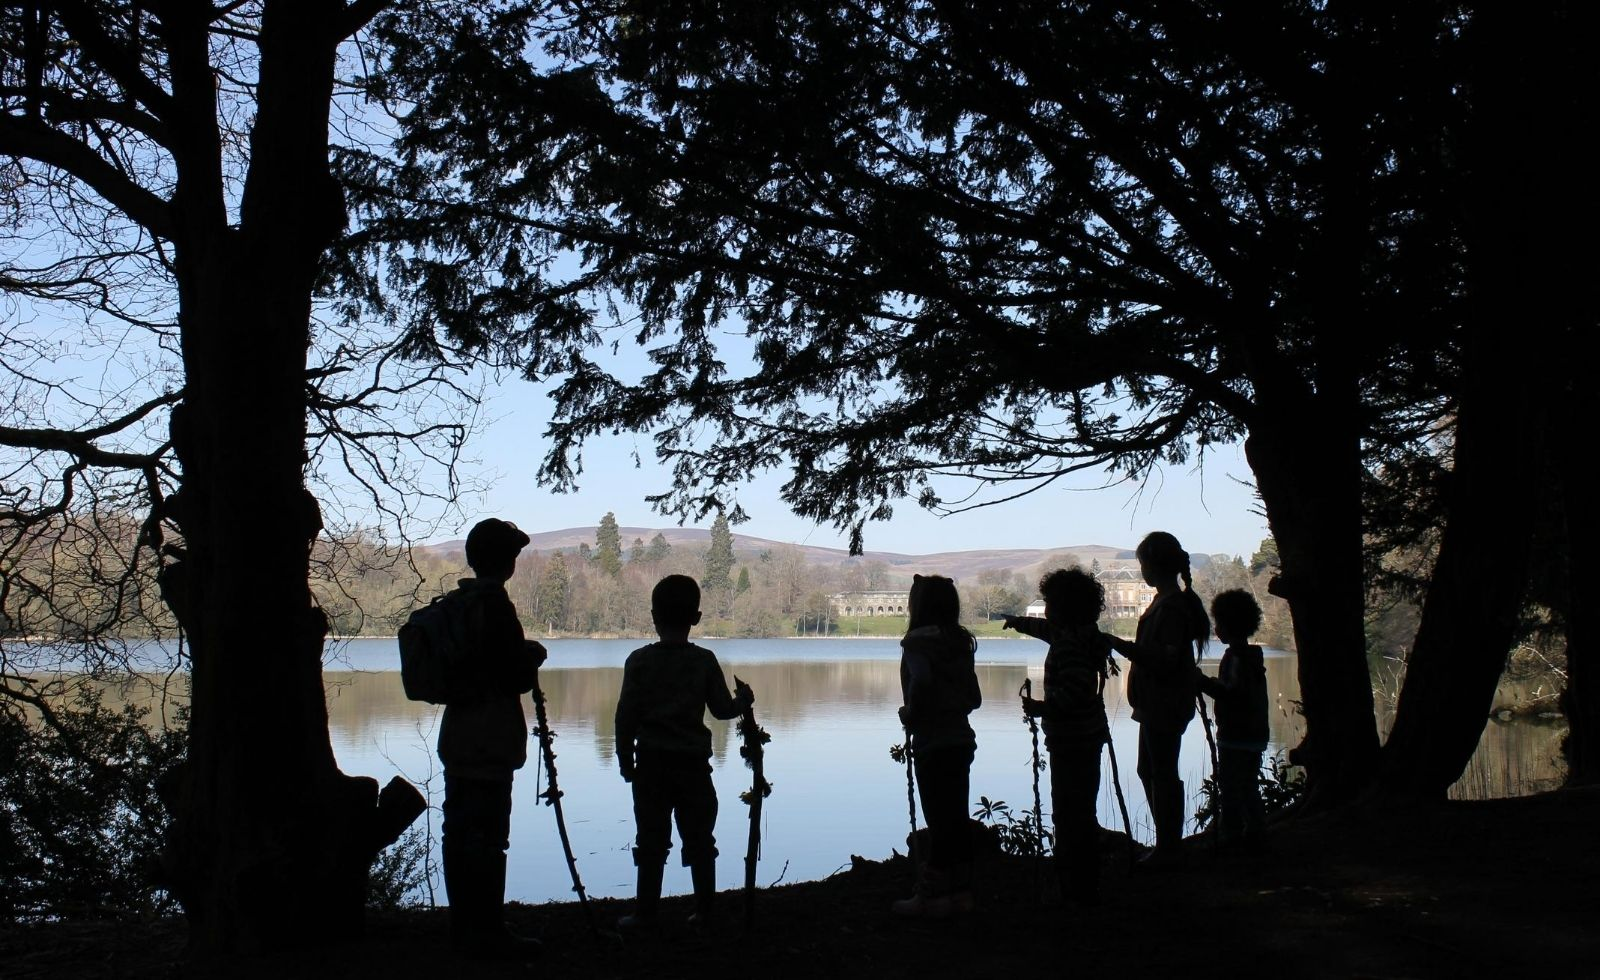 Silhouettes of children standing by the edge of a loch